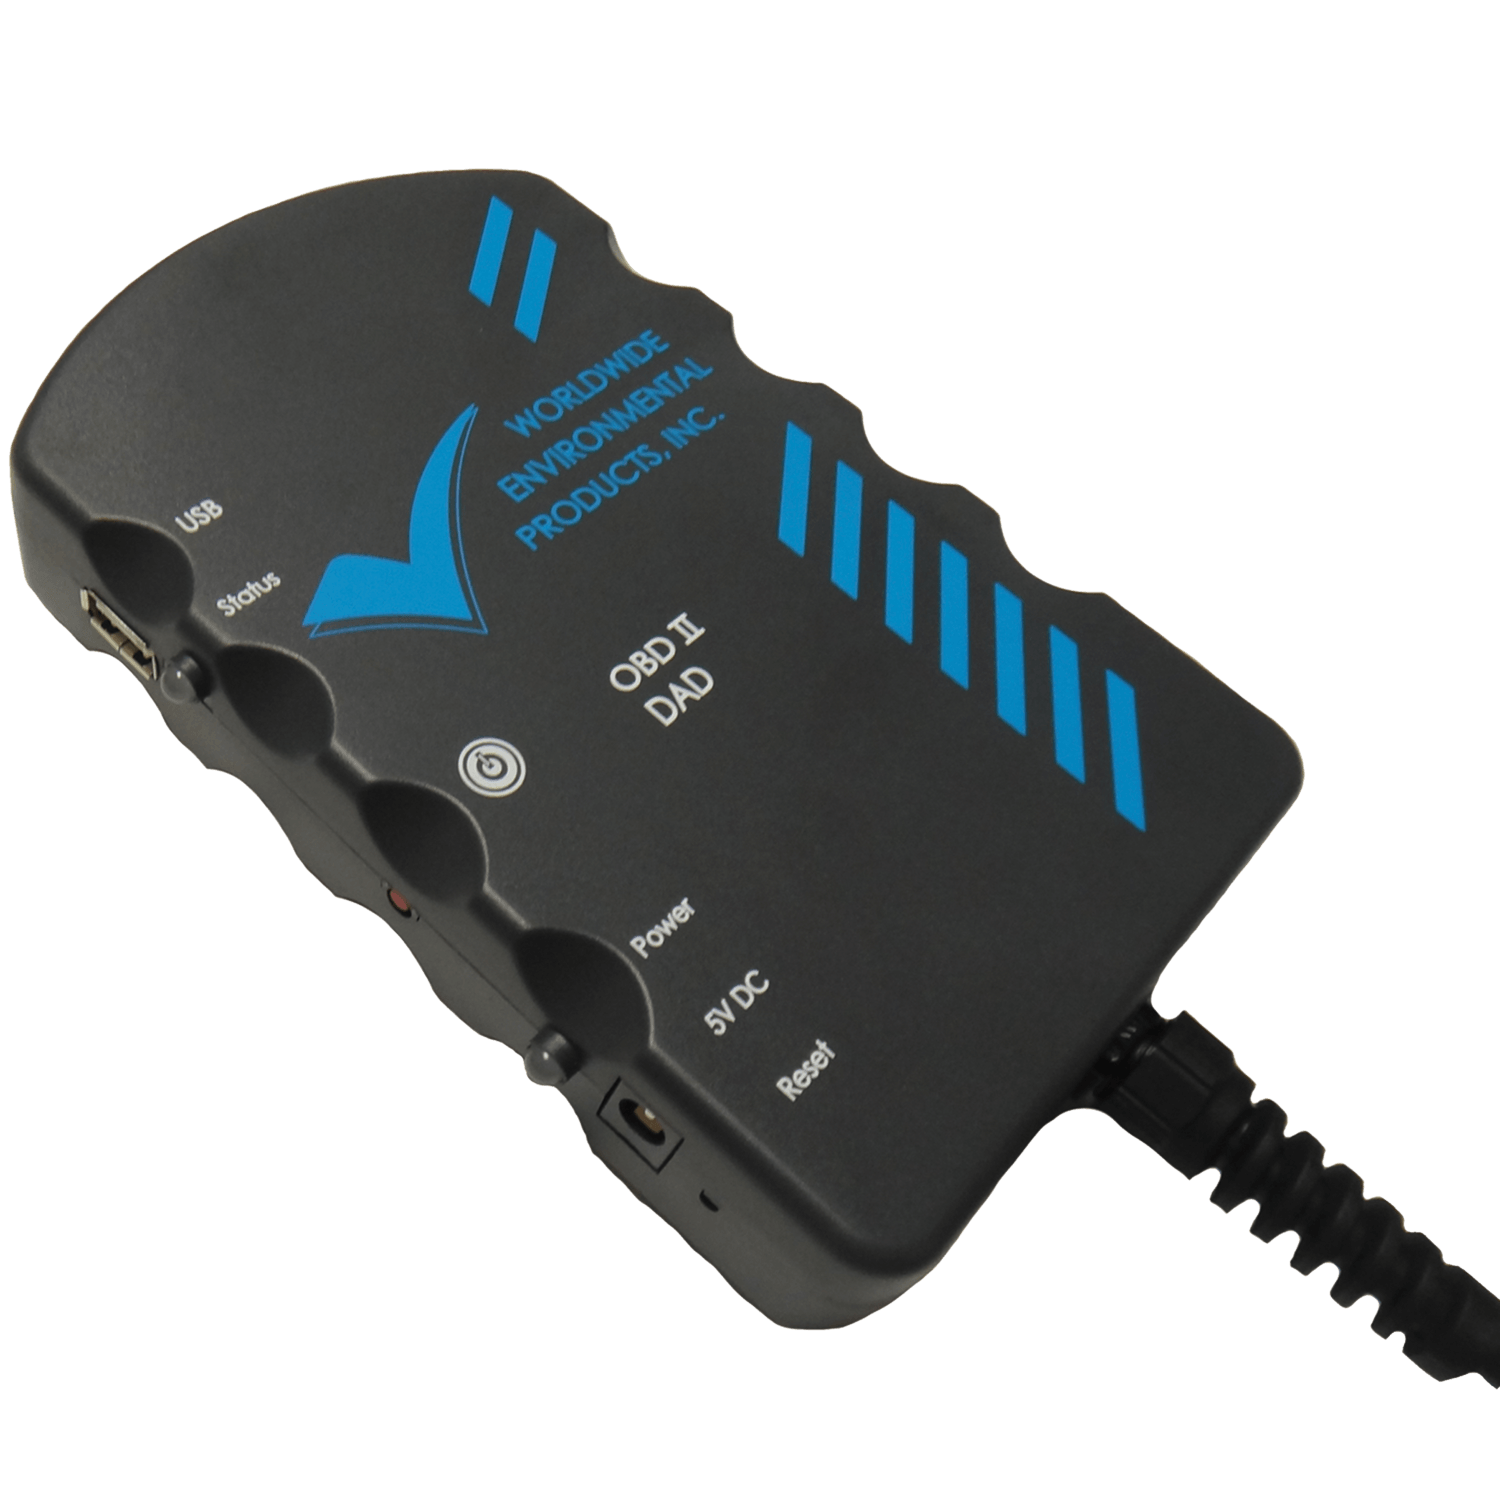 Worldwide OBDII Data Acquisition Device (DAD) Paddle